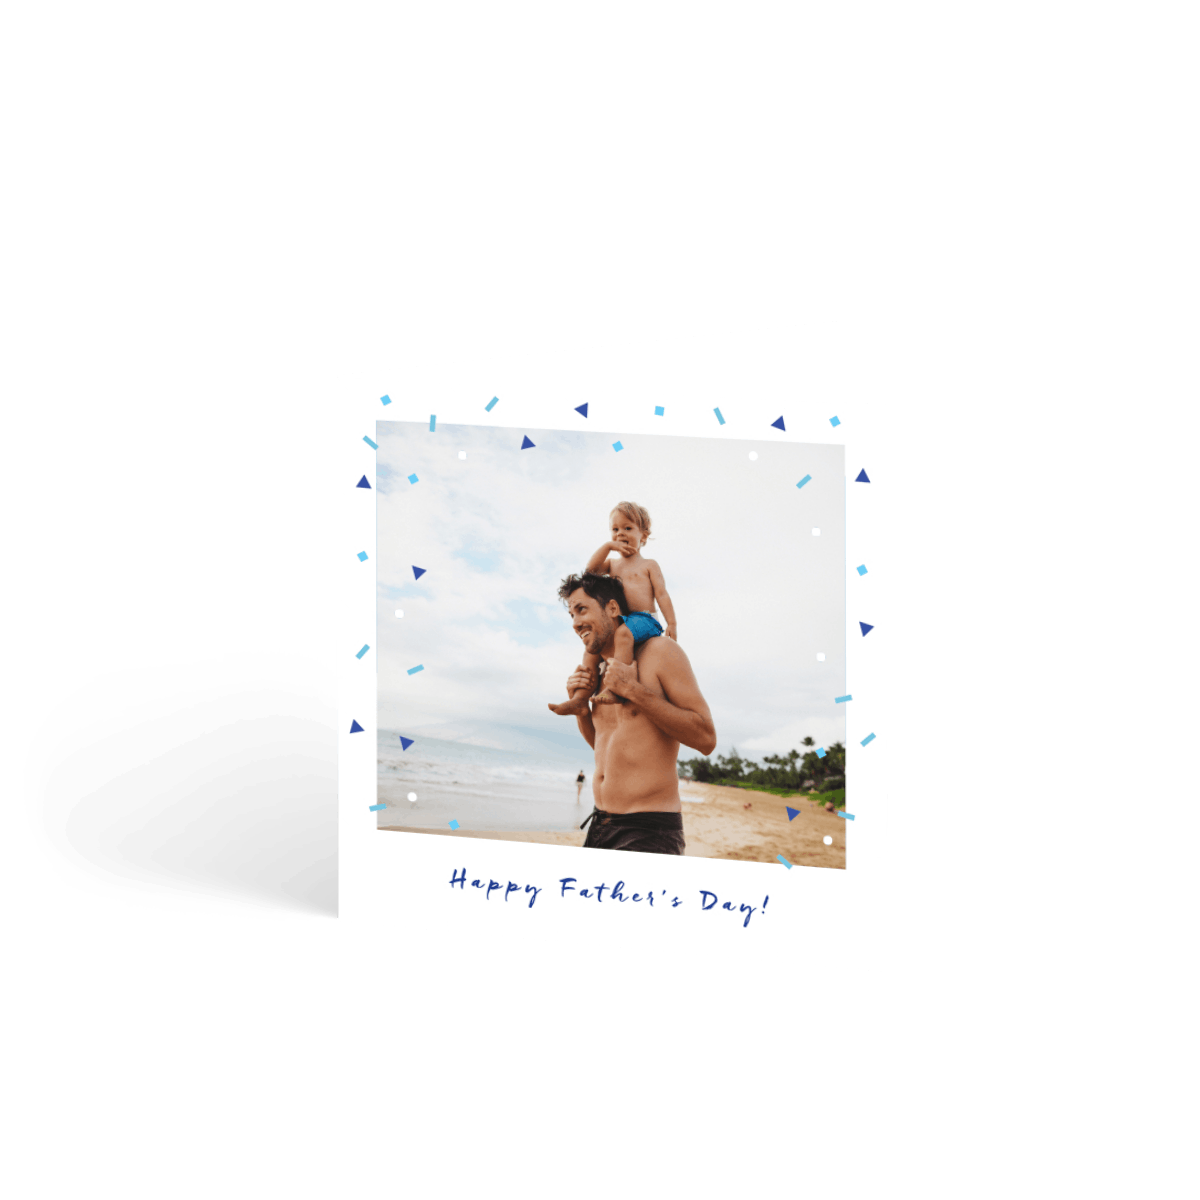 Https%3a%2f%2fwww.papier.com%2fproduct image%2f38542%2f16%2ffather s day blue confetti 9575 front 1527195433.png?ixlib=rb 1.1